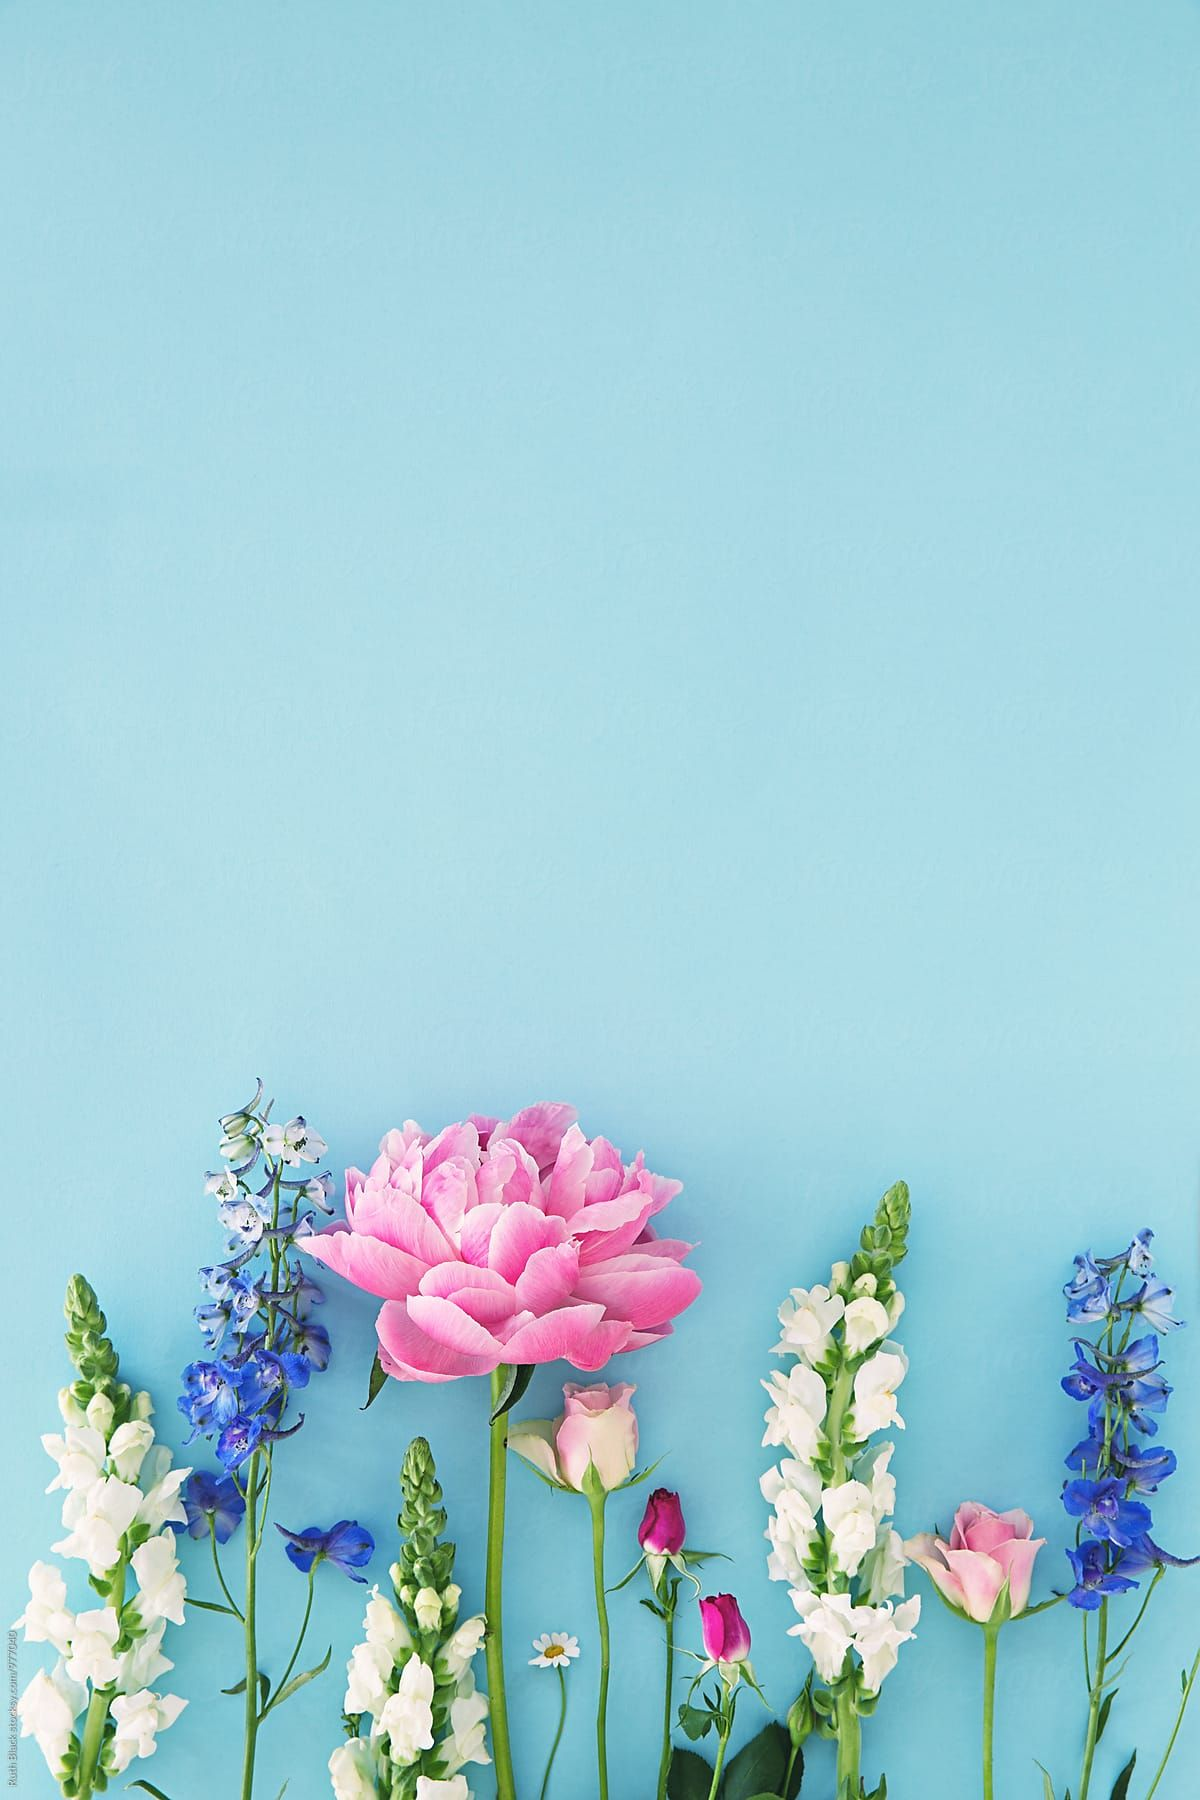 Country Garden Flowers Arranged On Blue Download this high